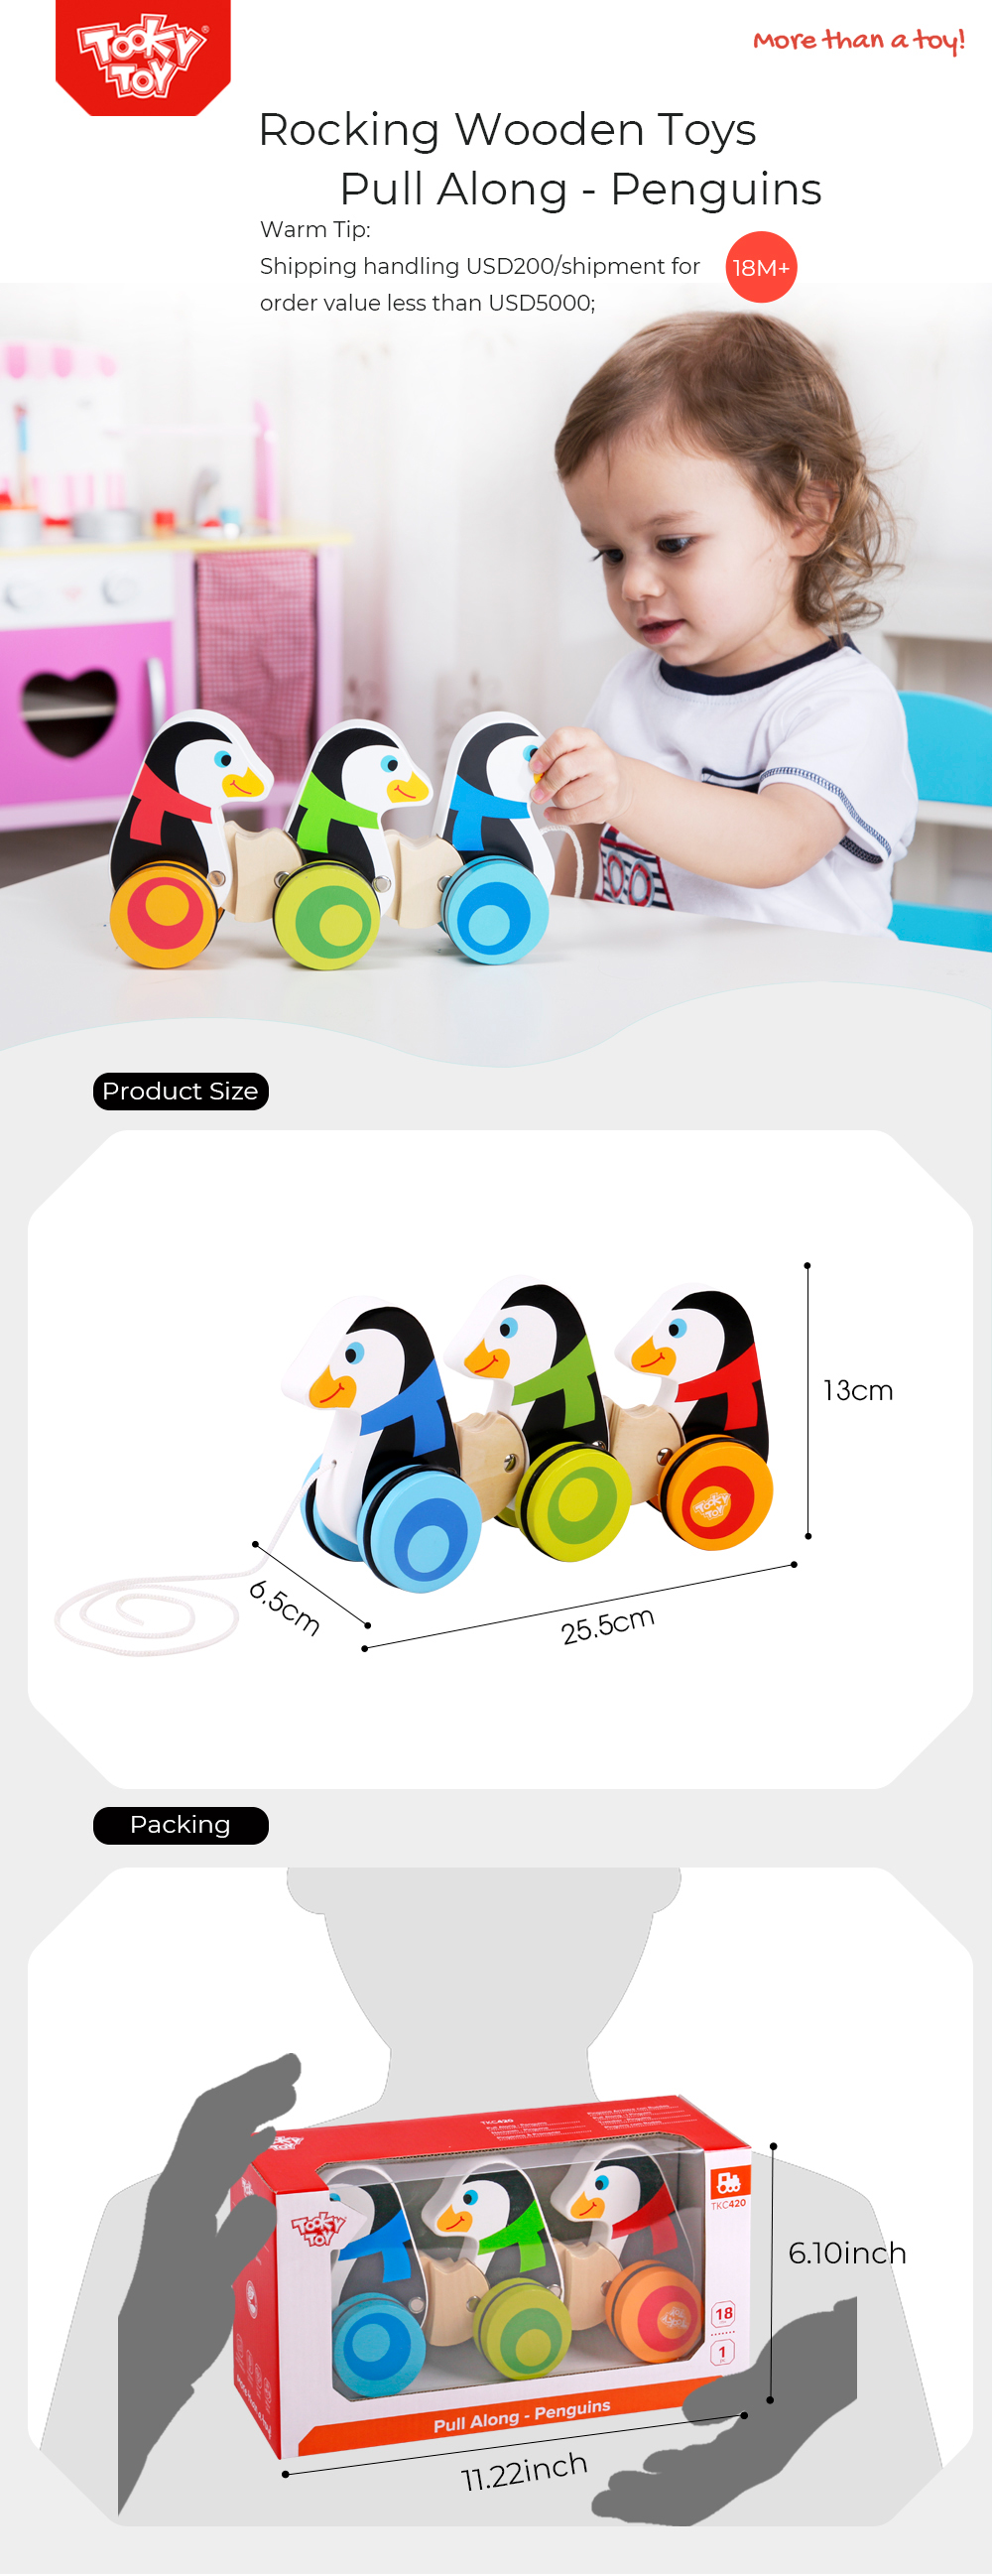 Rocking Wooden Toys Pull Along - Penguins